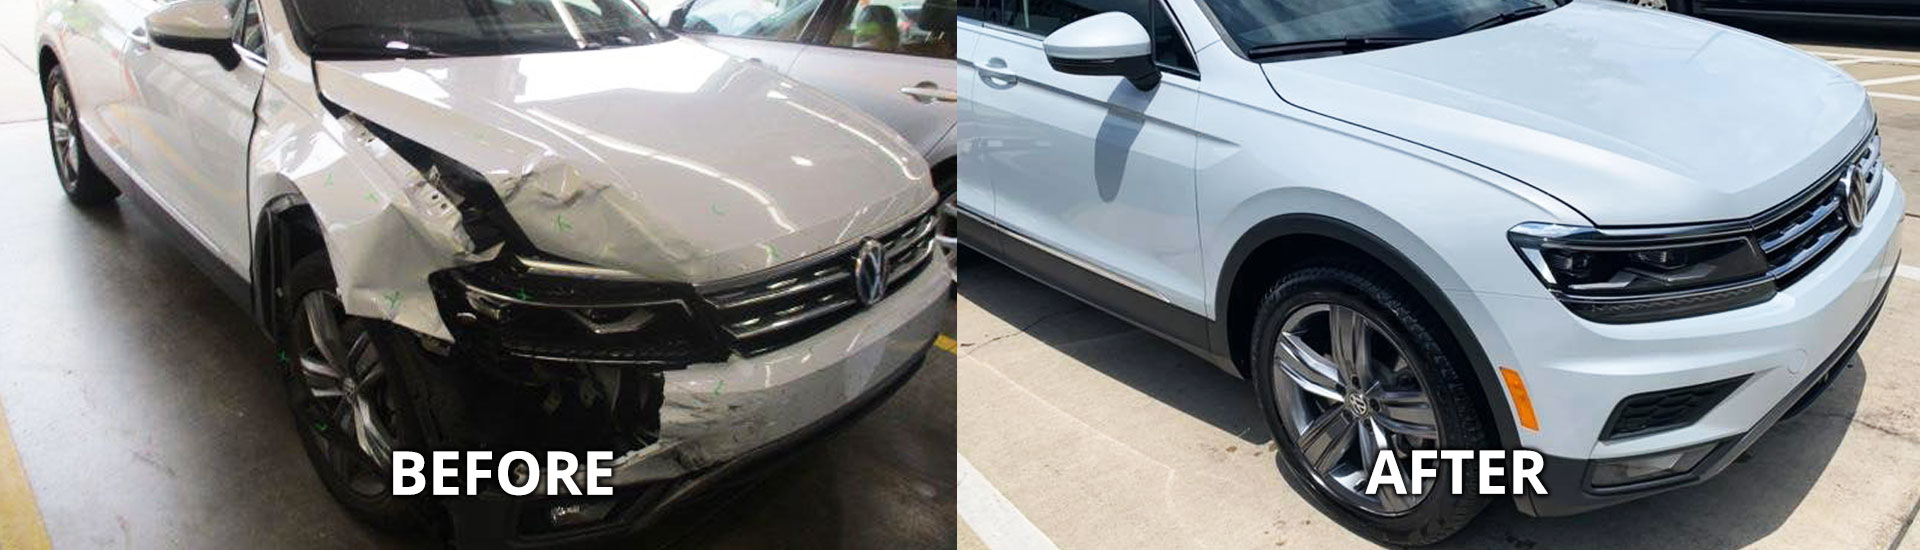 Collision Center in Fox Chapel, Before and After